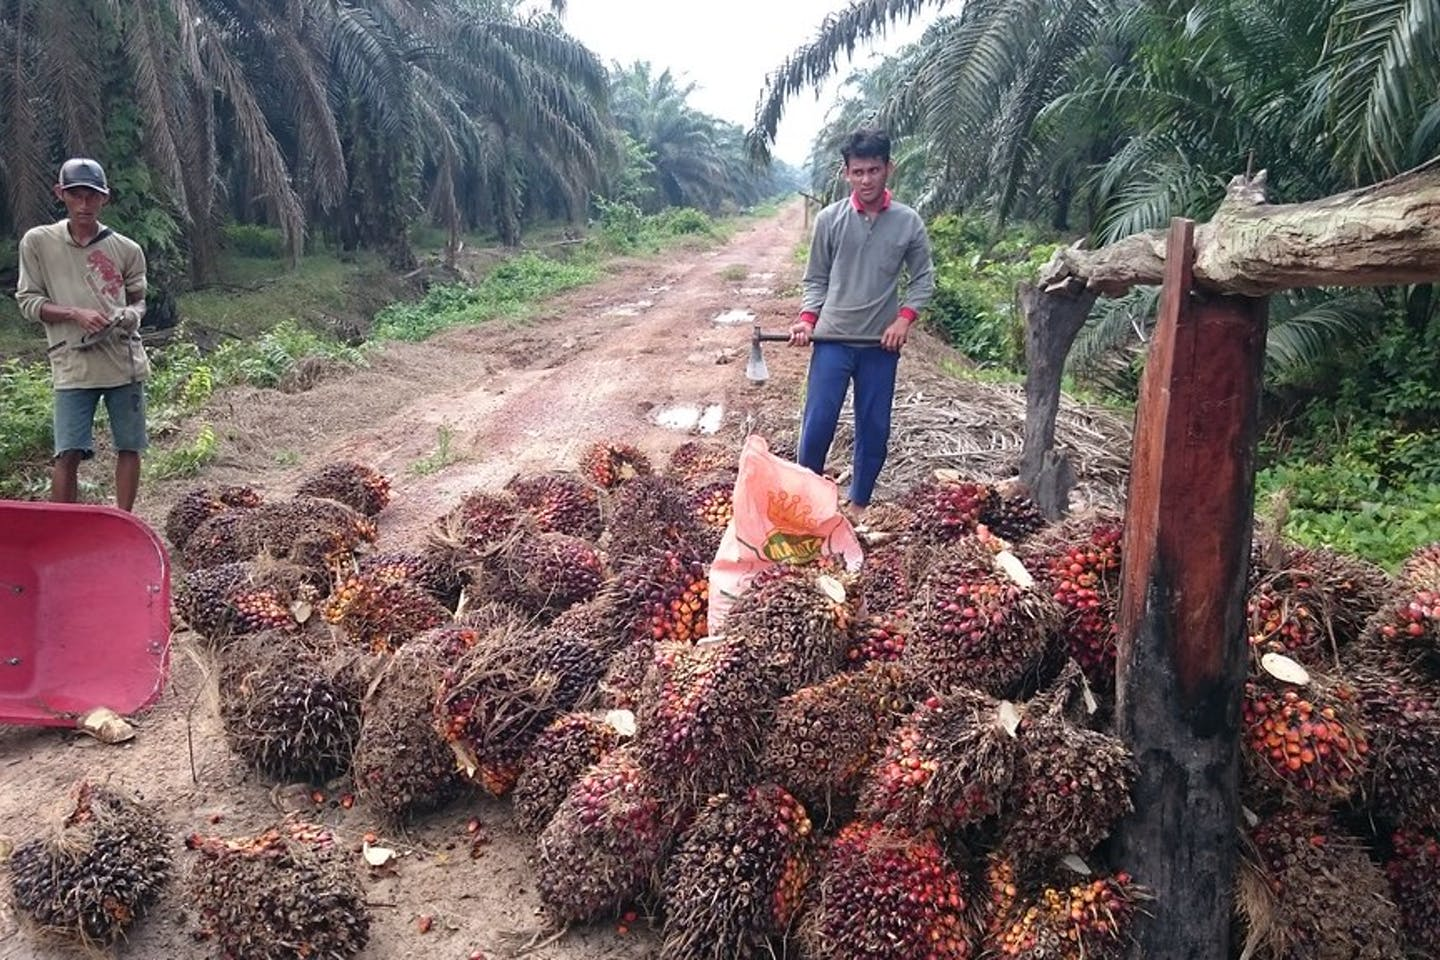 Workers on an RSPO-certified plantation in Jambi, Indonesia.